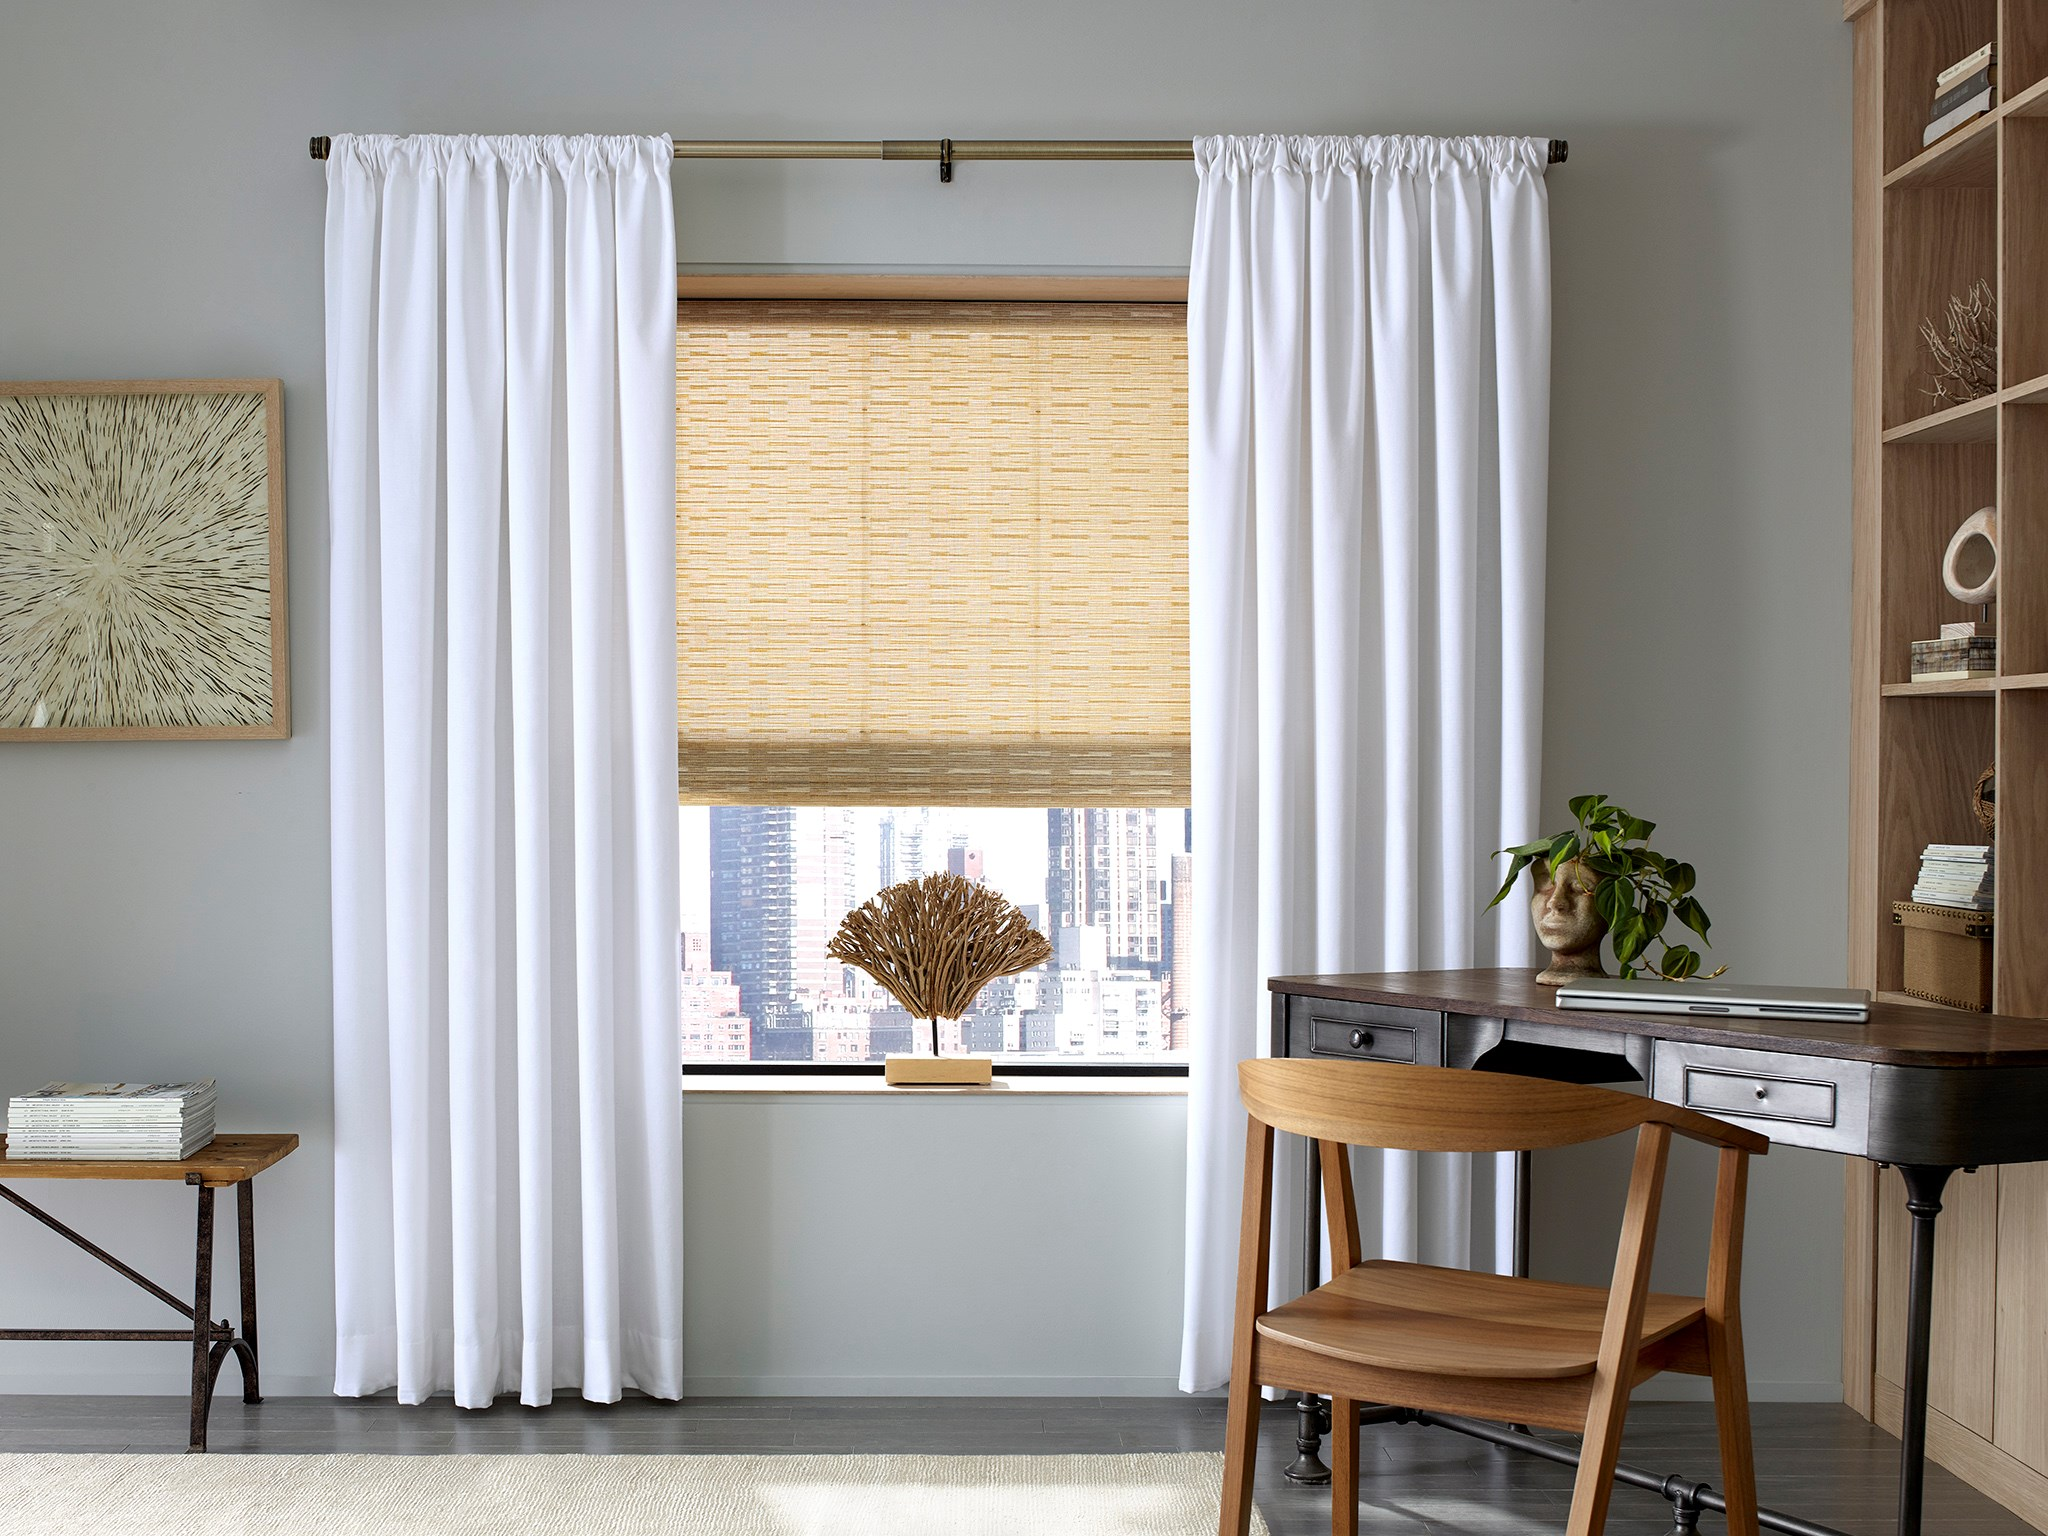 shoppers drapes and blinds horizontals verticals easy rod pocket drapery panel blindscom